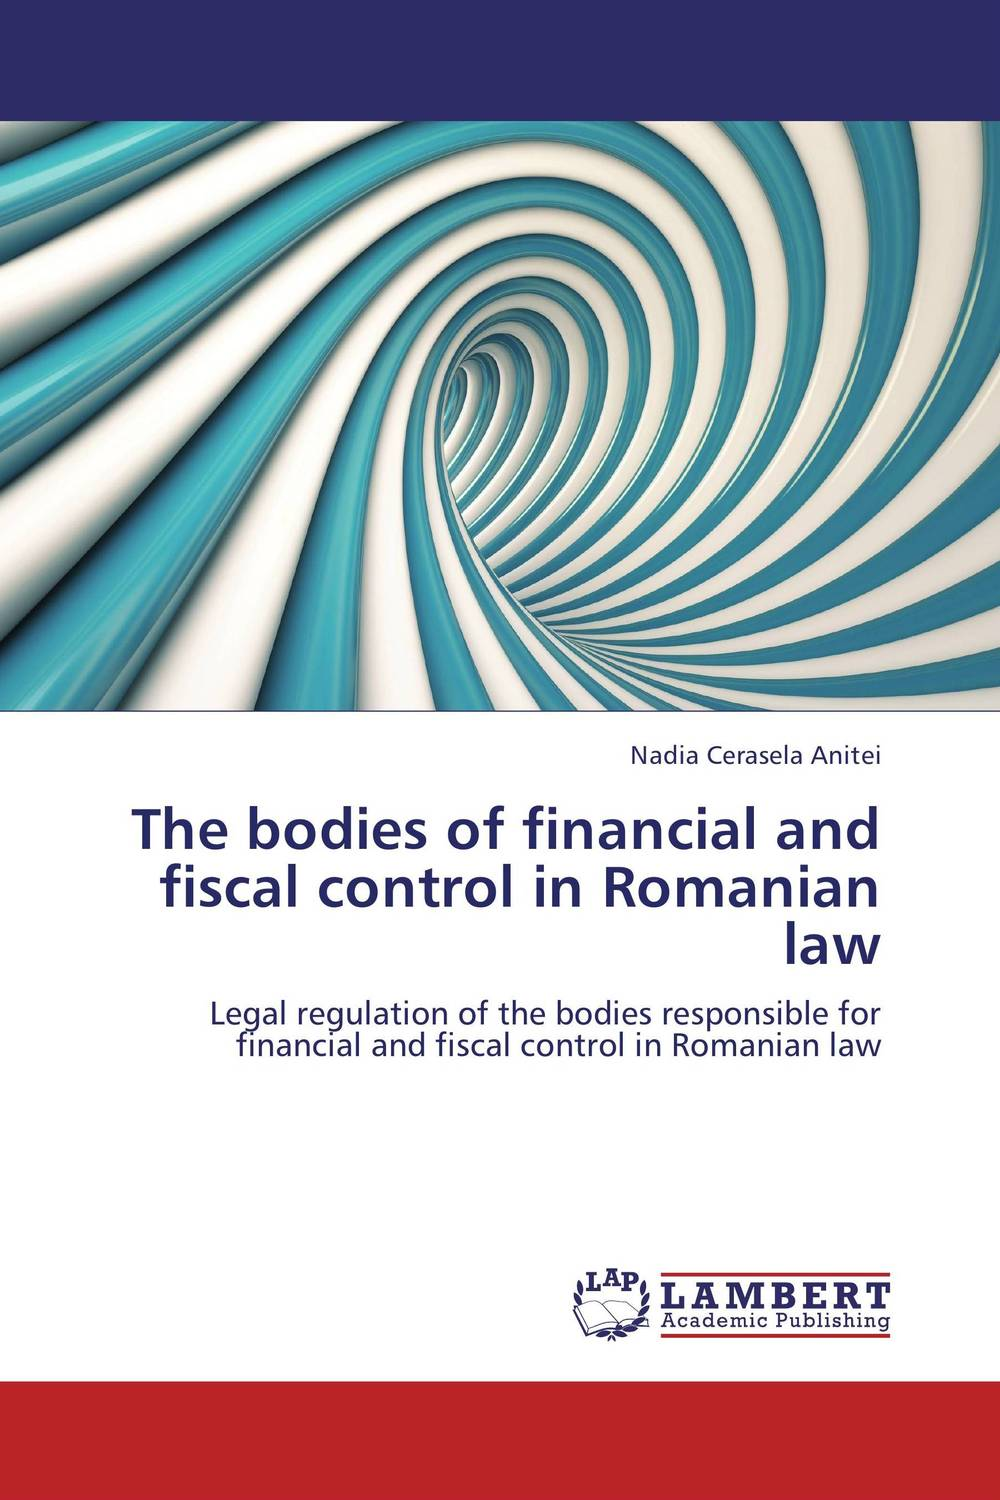 The bodies of financial and fiscal control in Romanian law bodies the whole blood pumping story